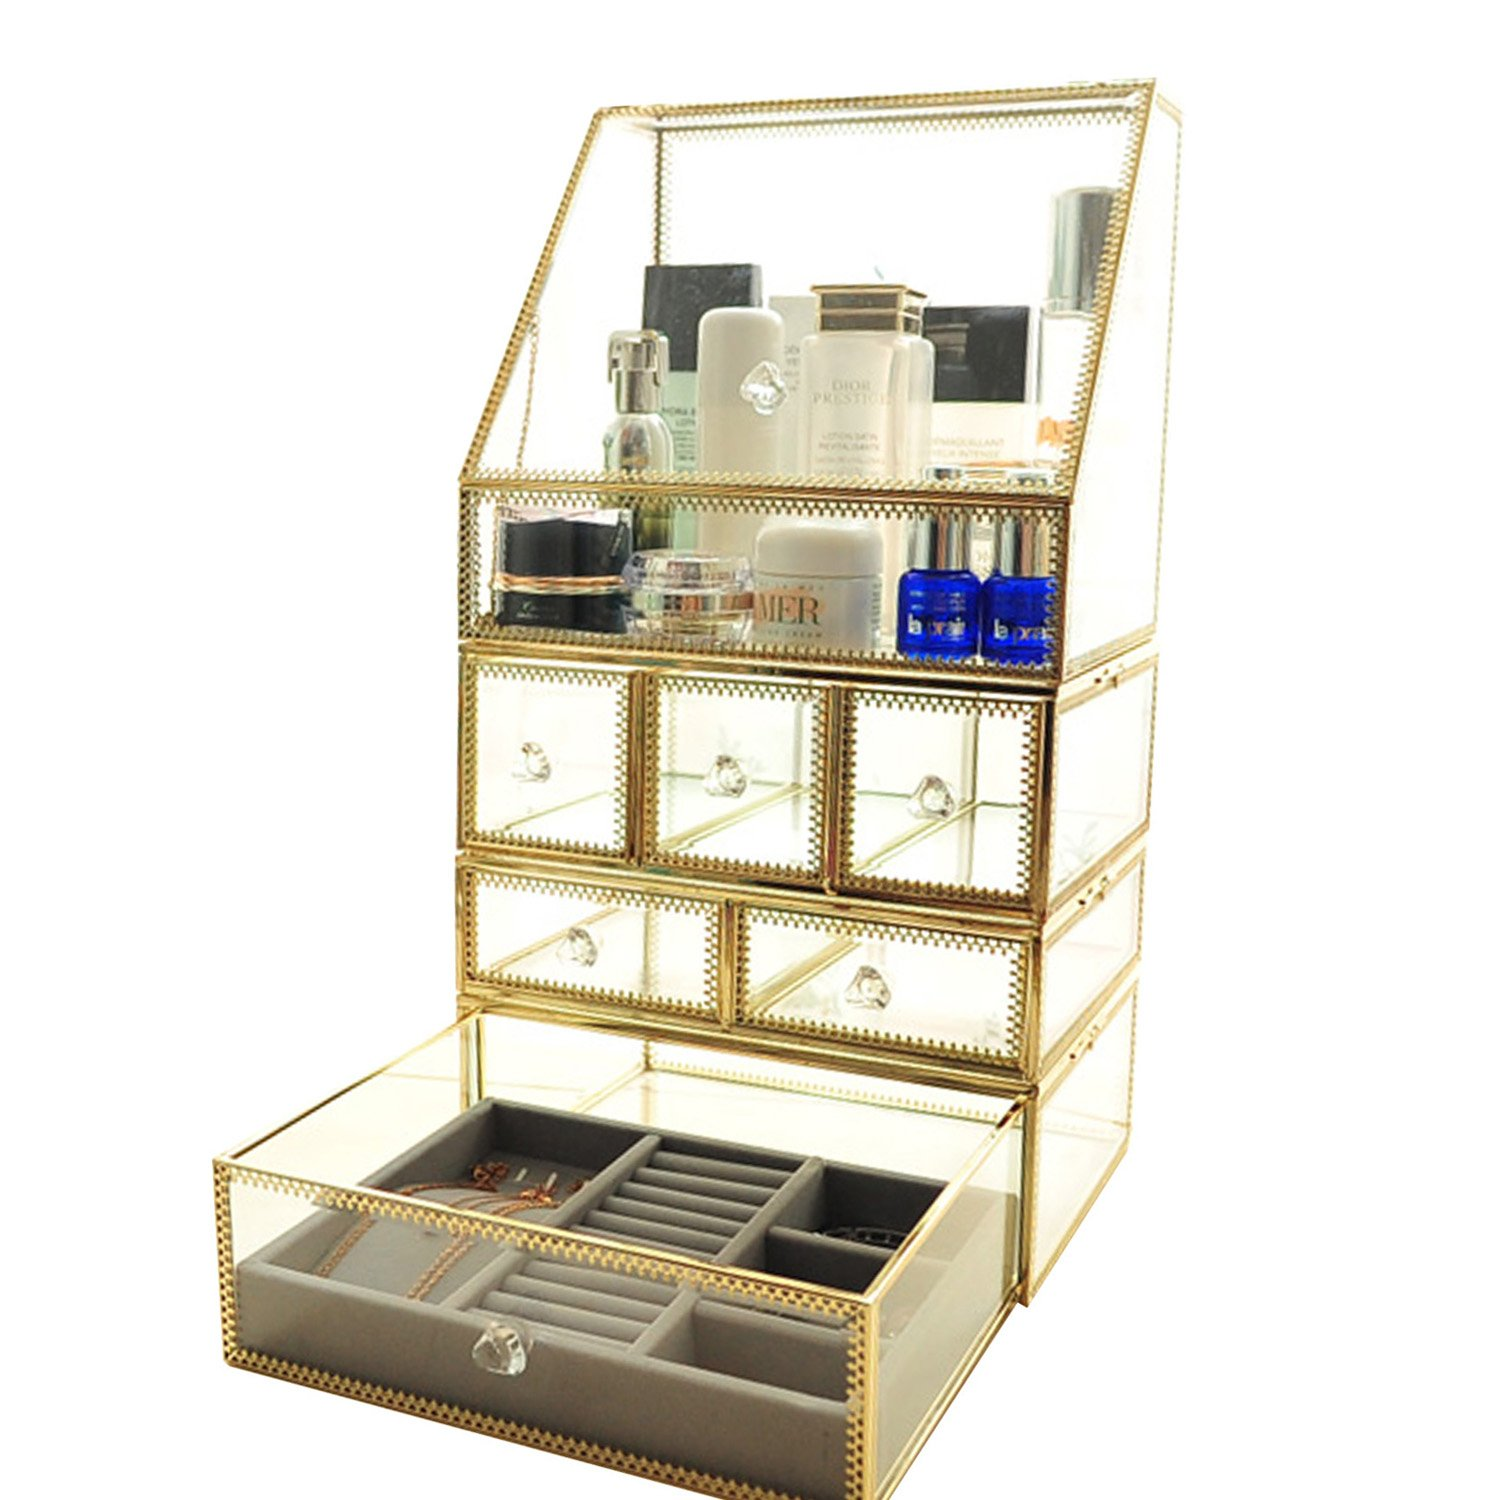 Hersoo Gold Vintage Spacious 4 Tier Drawers Clear Glass with Brass Metal Cosmetic Makeup Storage Cube Set. It Consists of 4 Separate Organizers Front Open Lid-Display by Hersoo